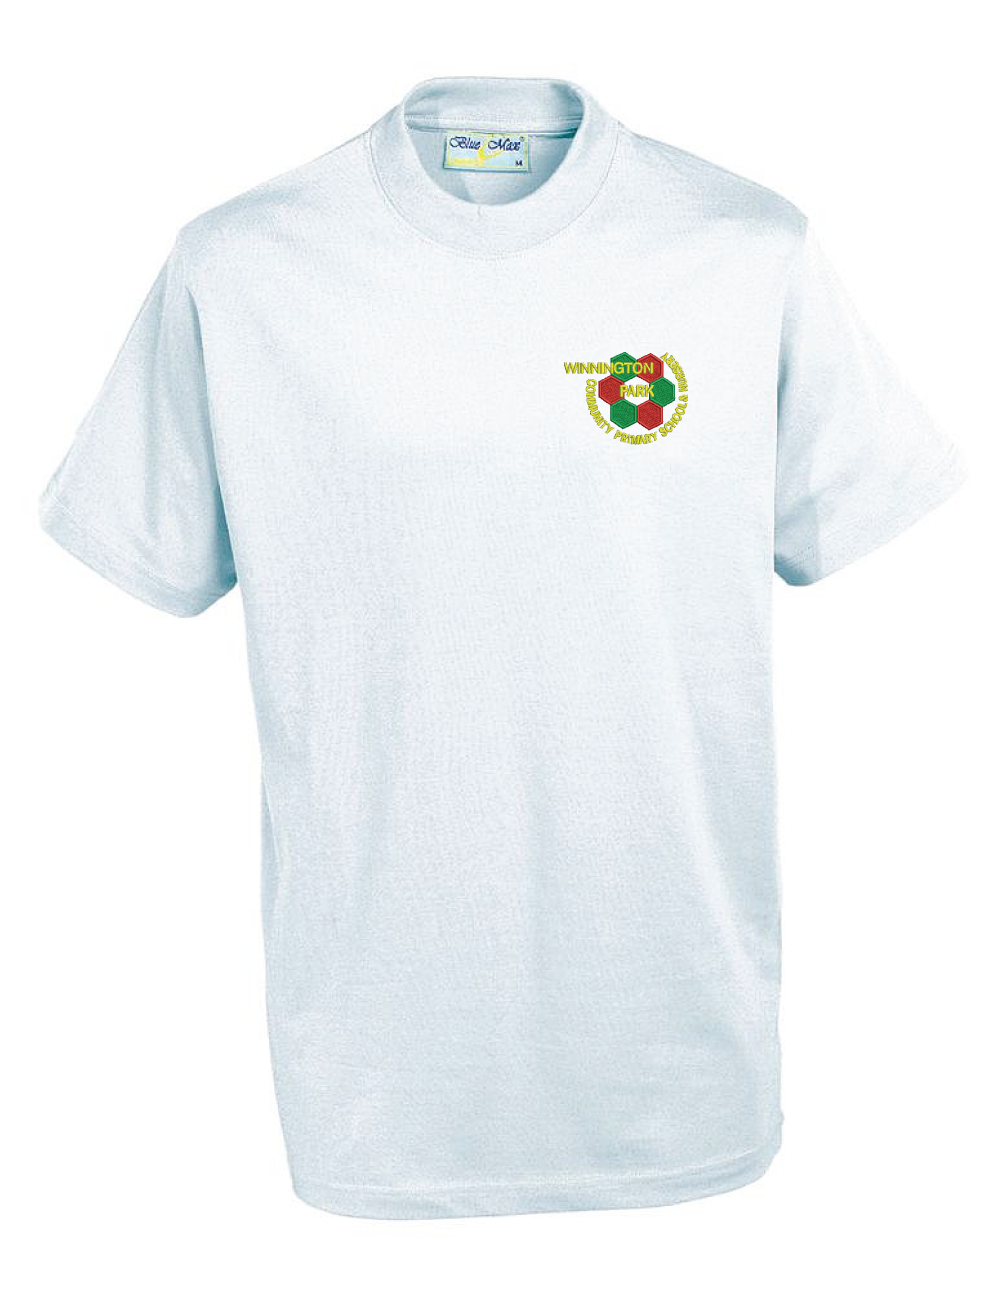 Winnington Park Primary School PE T Shirt